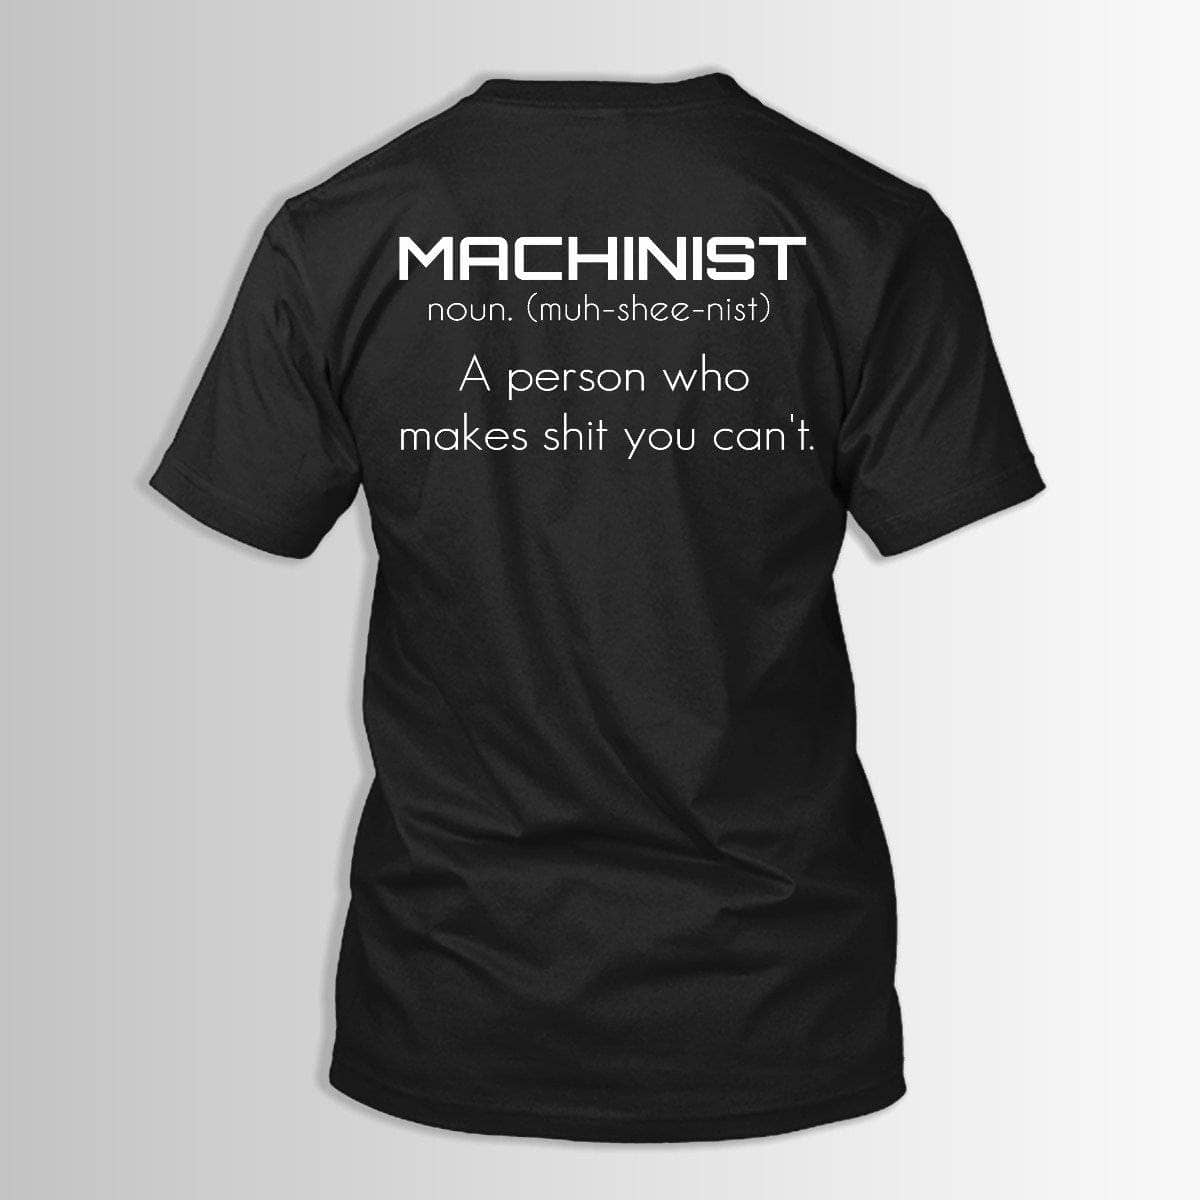 MACHINIST DEFINITION